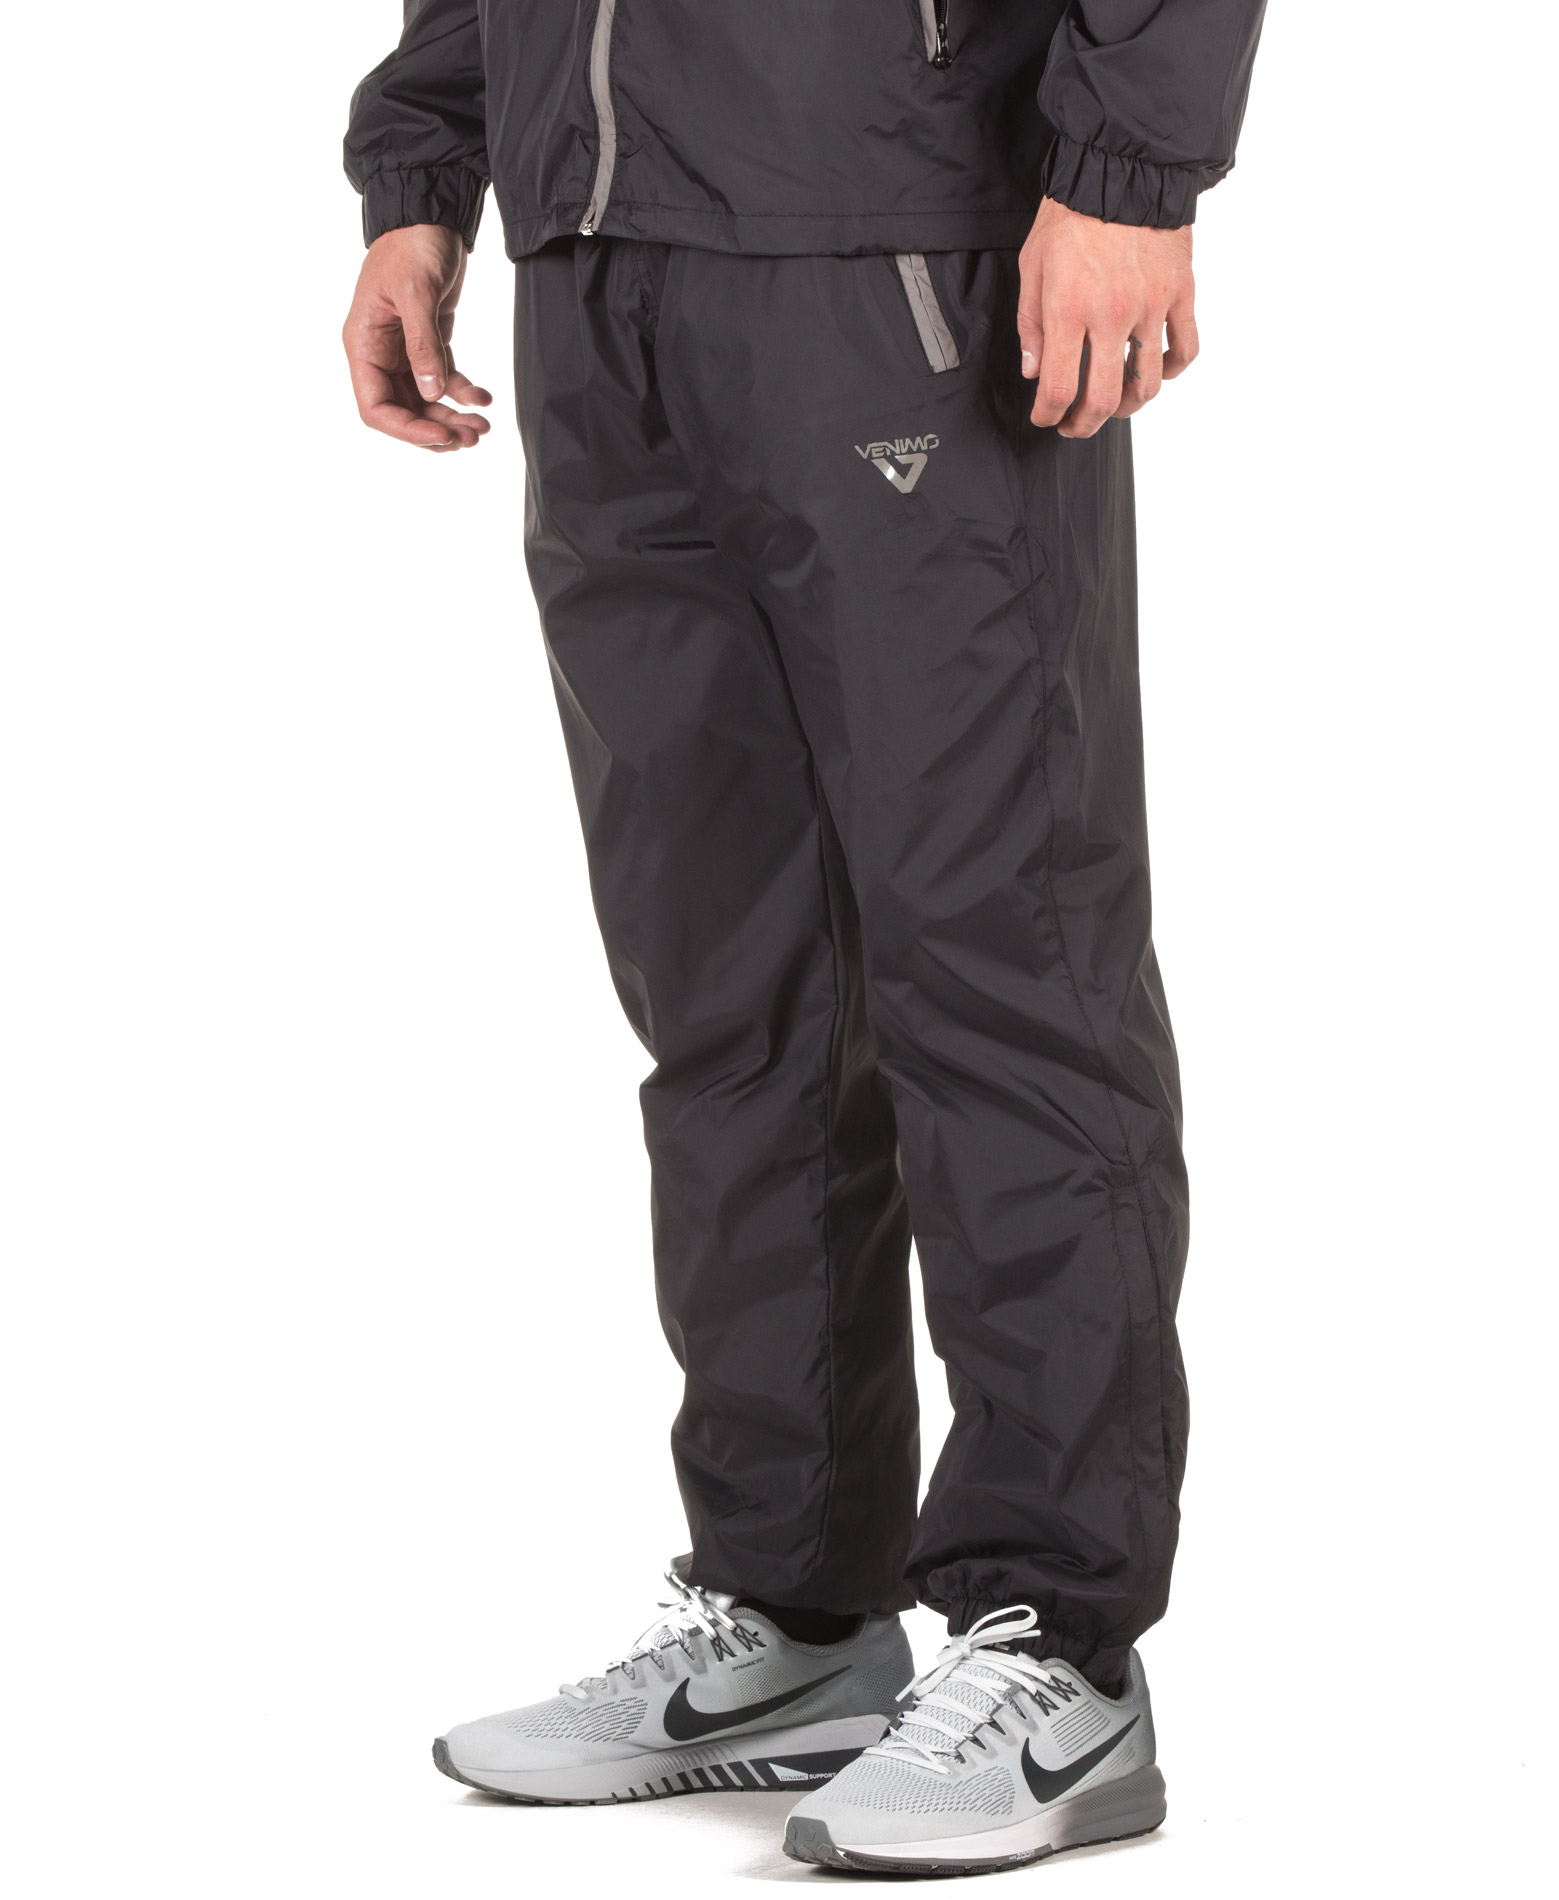 VENIMO SOLID PANT 17-21020501 Μαύρο